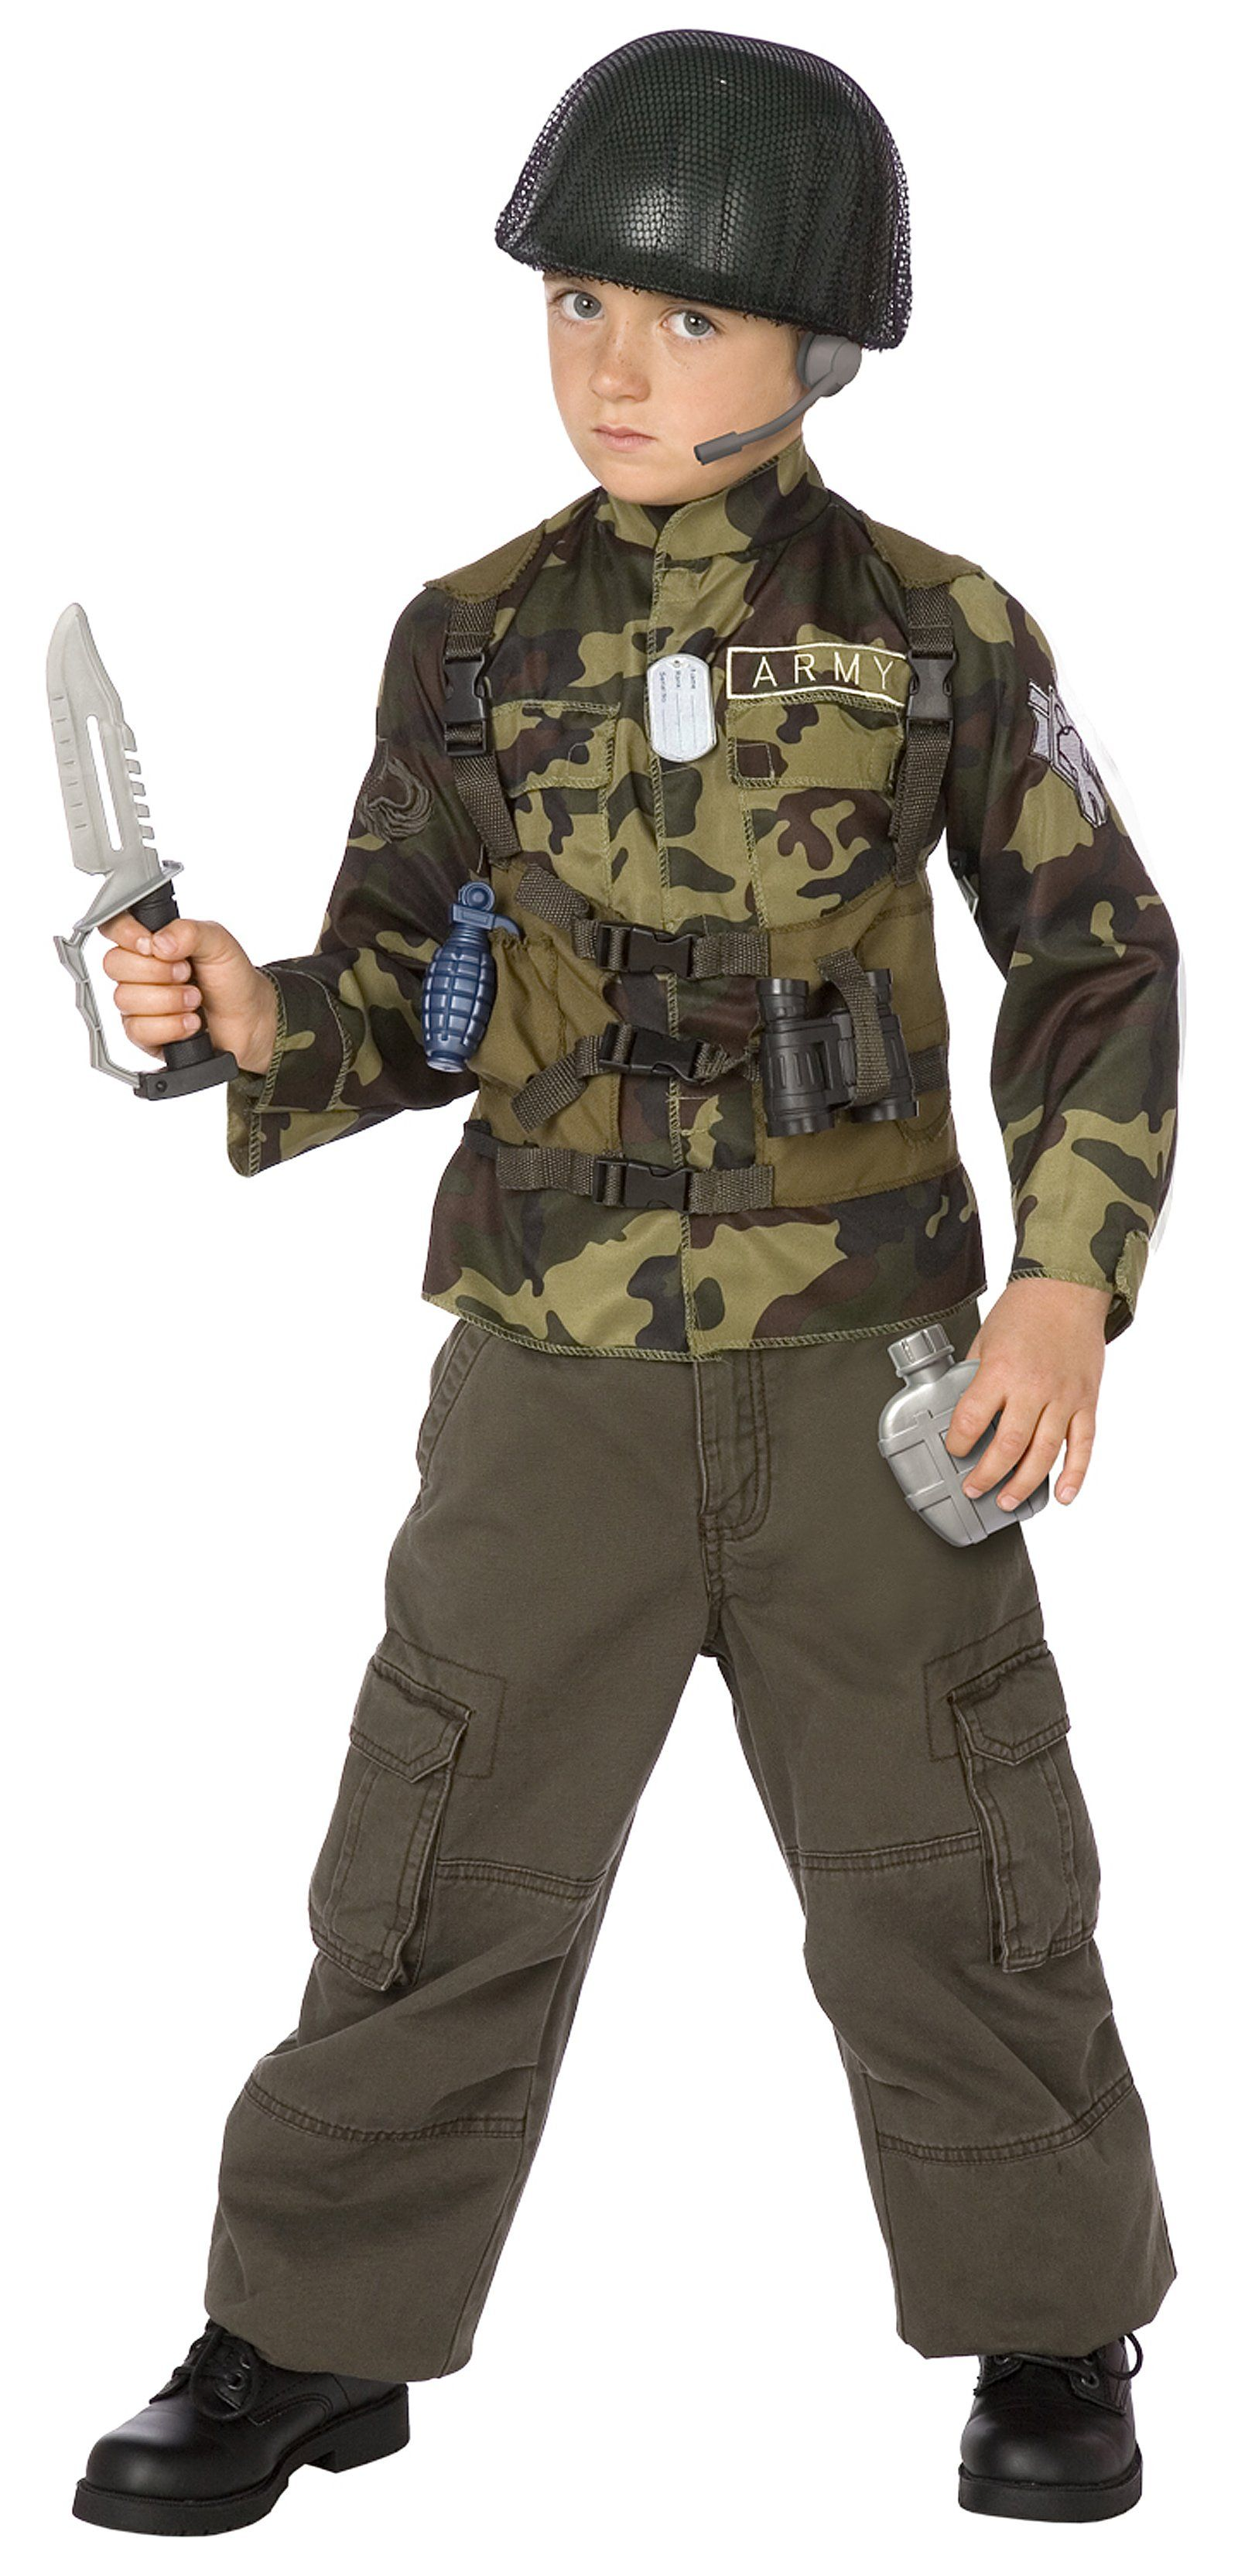 Wicked Costumes Army Helmet Plastic Hat Outfit accessory for Soldier Military Fancy Dress